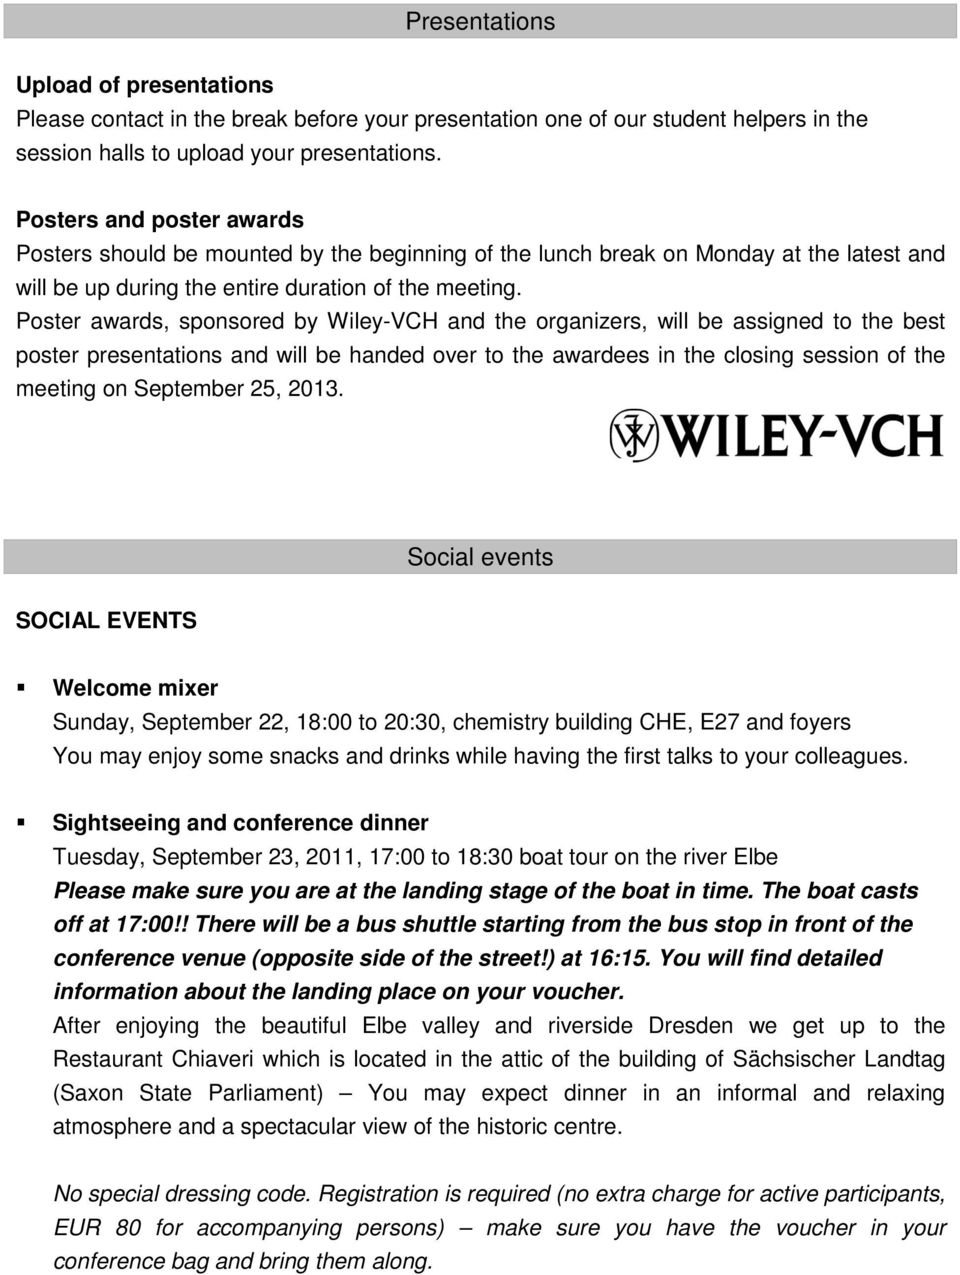 Poster awards, sponsored by Wiley-VCH and the organizers, will be assigned to the best poster presentations and will be handed over to the awardees in the closing session of the meeting on September